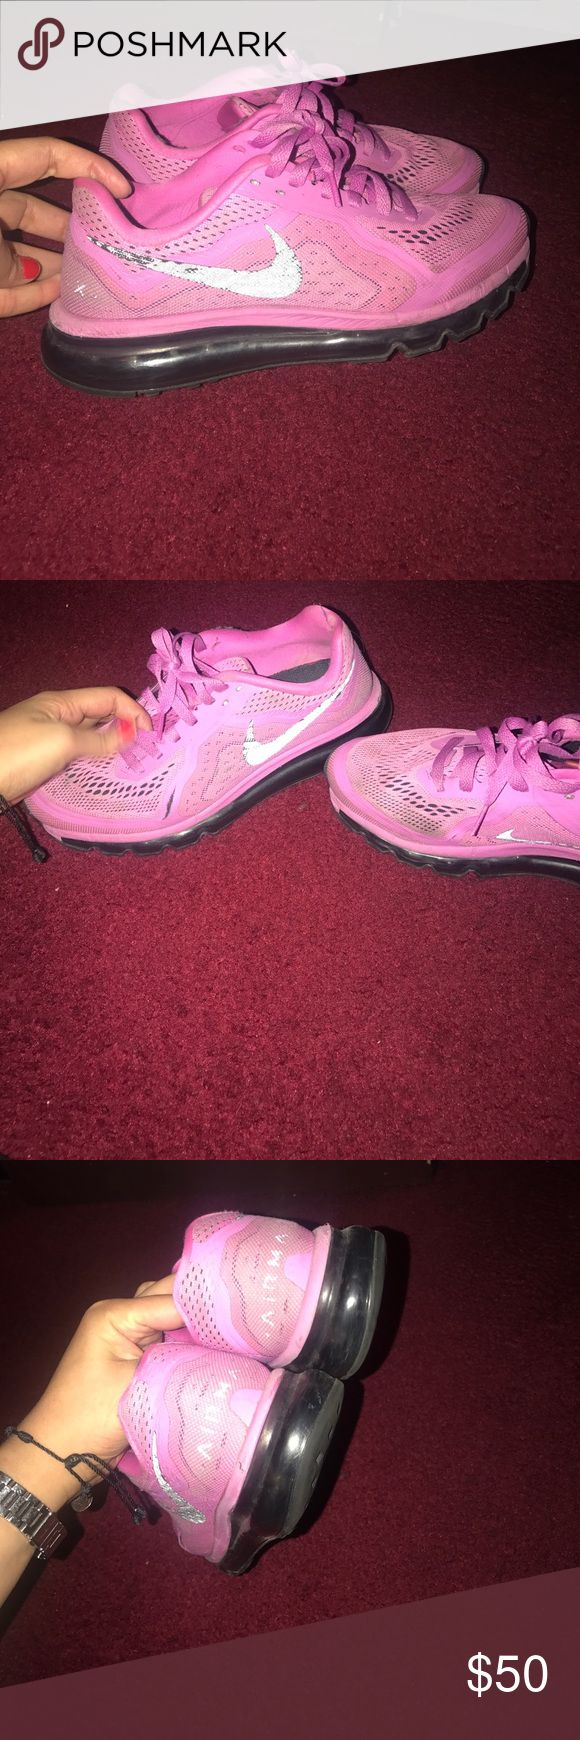 Nike air max pink purple color Good condition slight slit on side but other then avoid conditioner dusty need a good clean Nike Shoes Sneakers